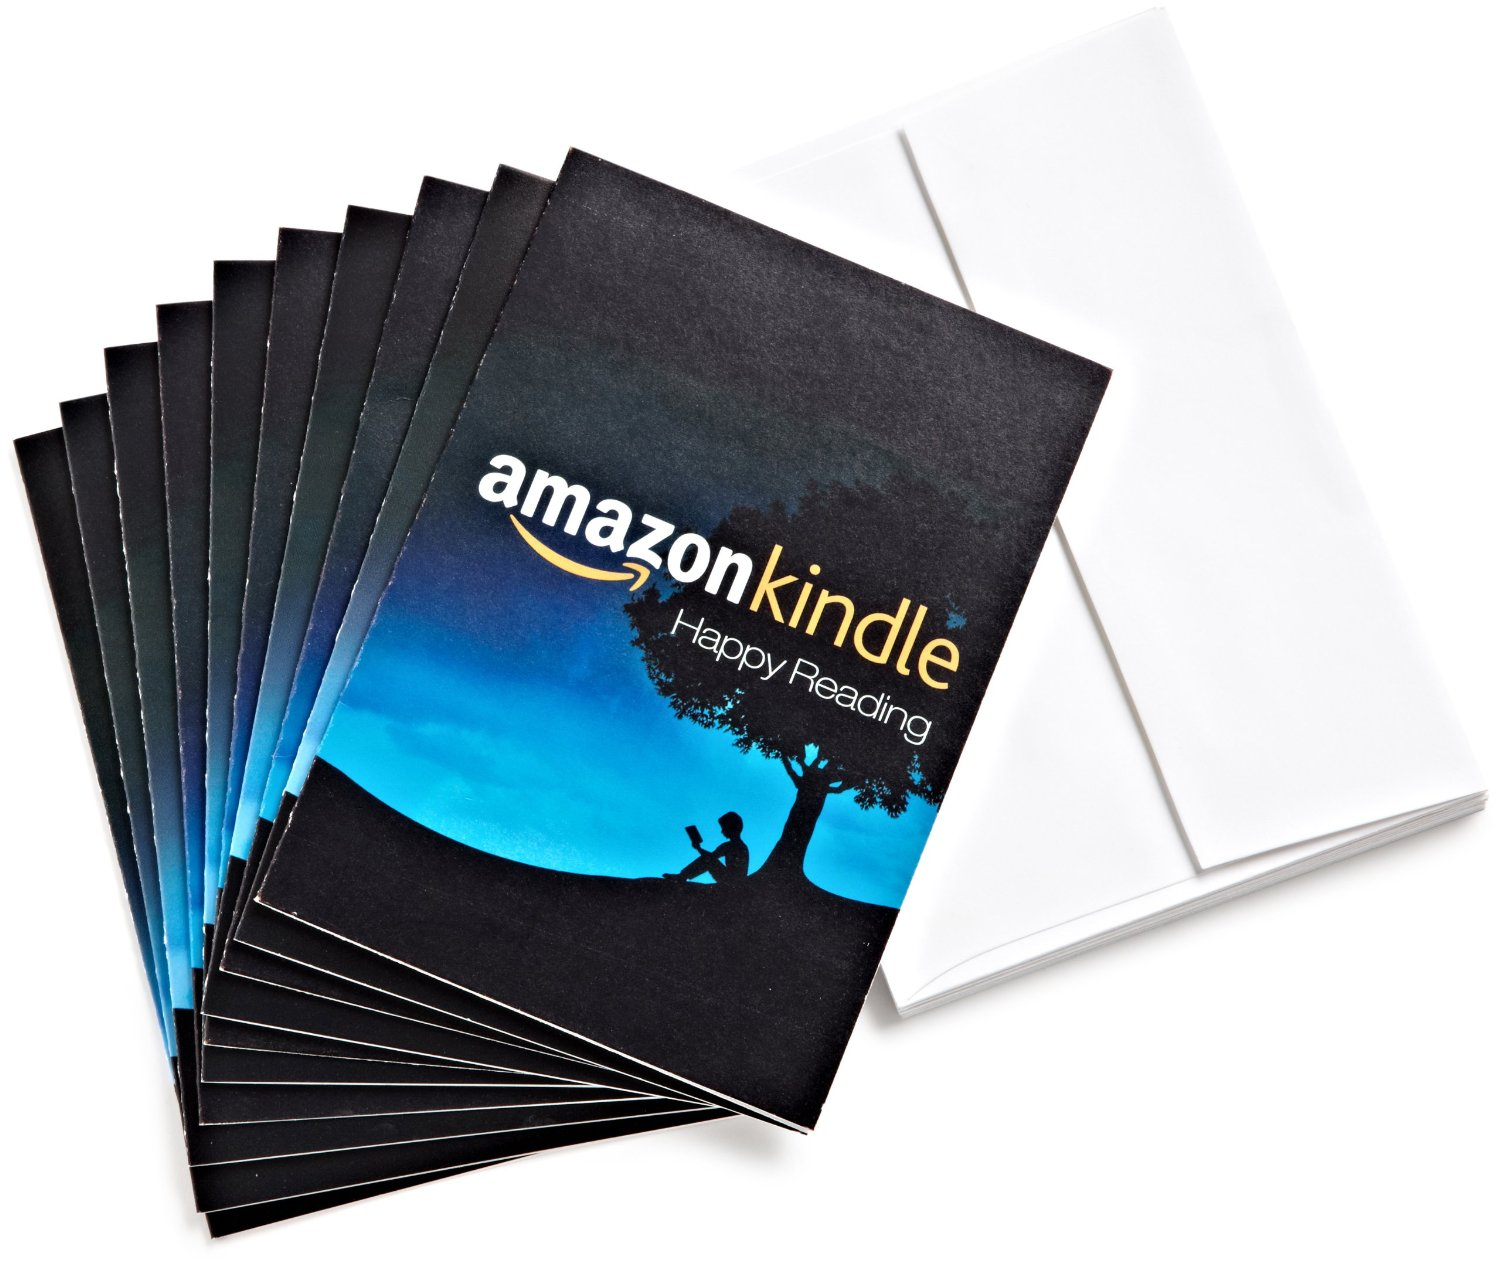 Where Can I Get a Kindle Gift Card – Best Place to Buy